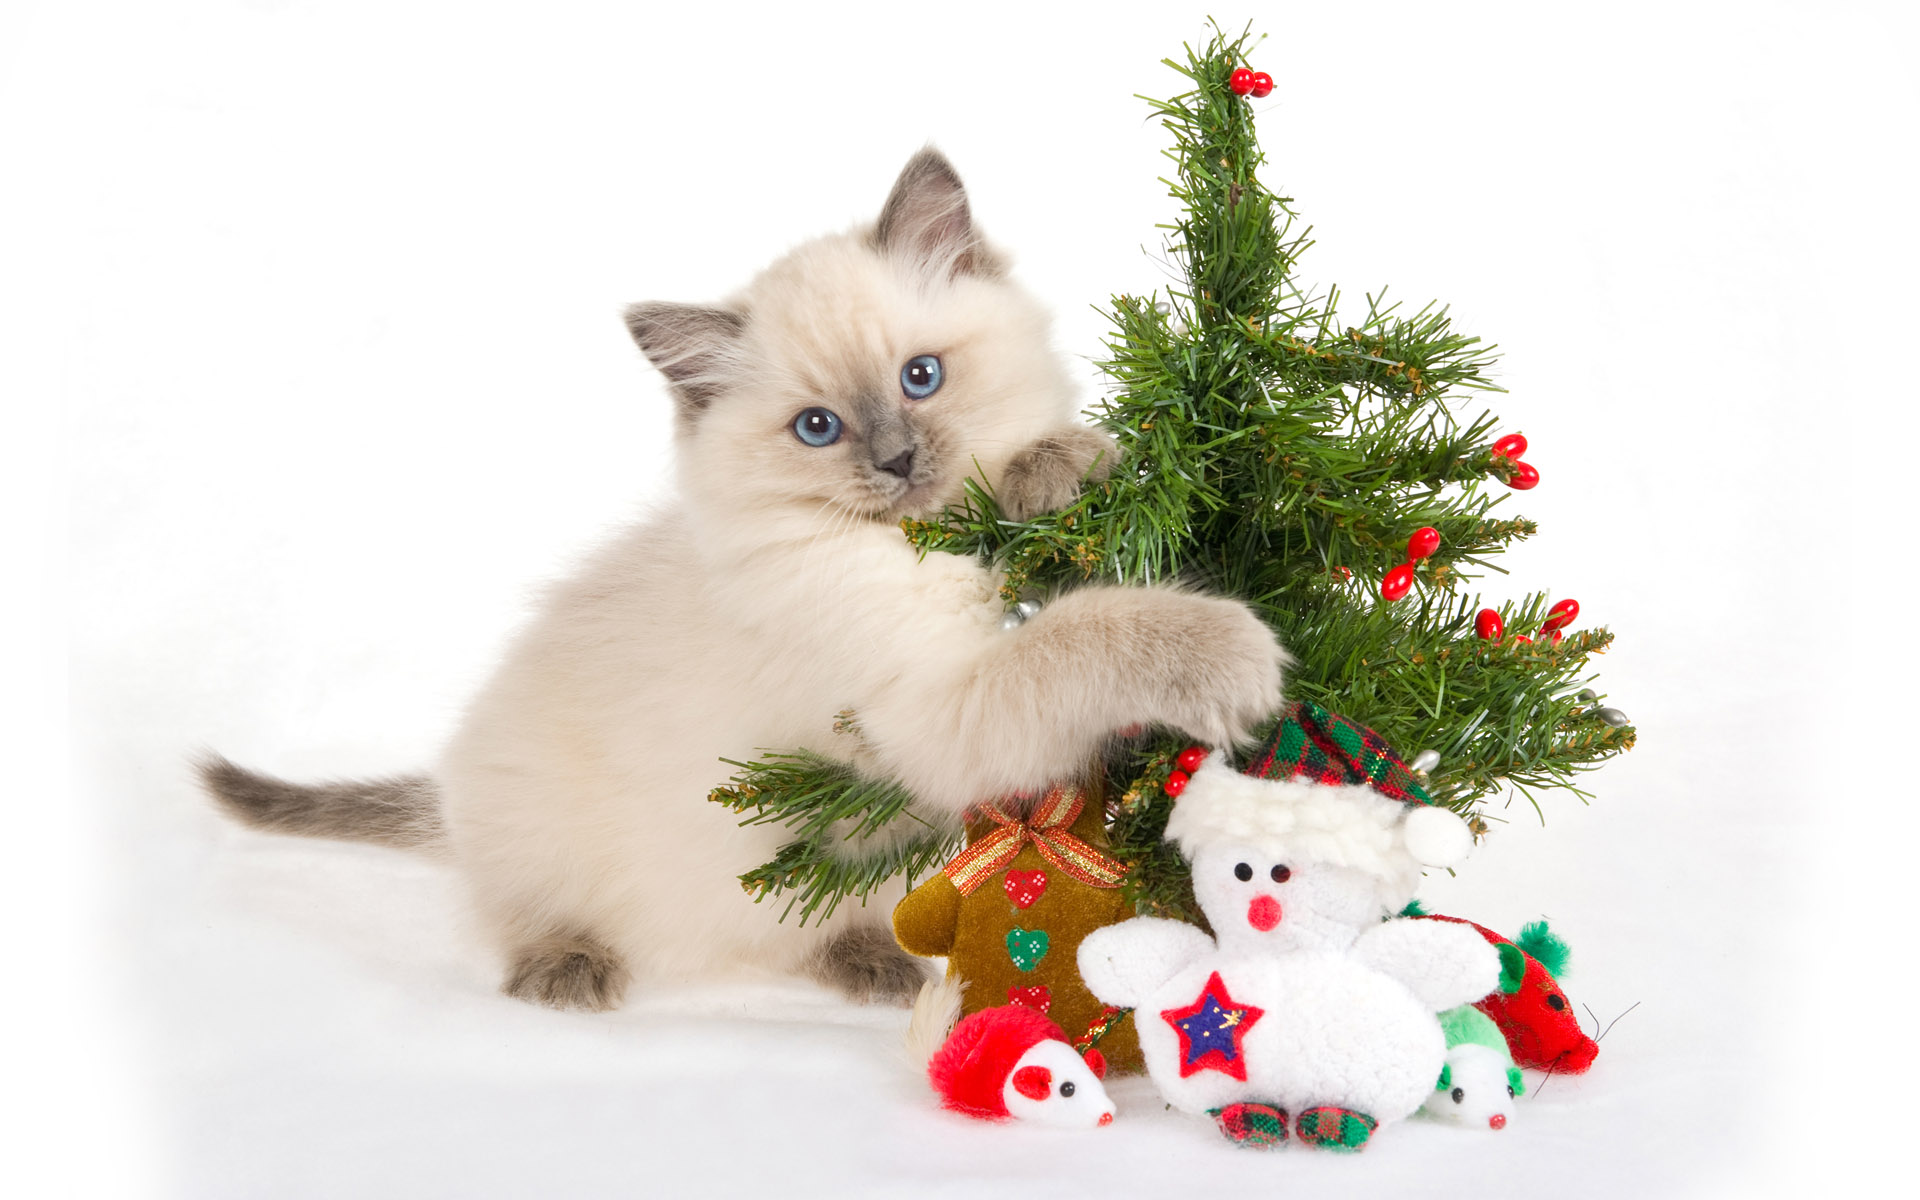 1920x1200 Cat with Christmas tree desktop PC and Mac wallpaper